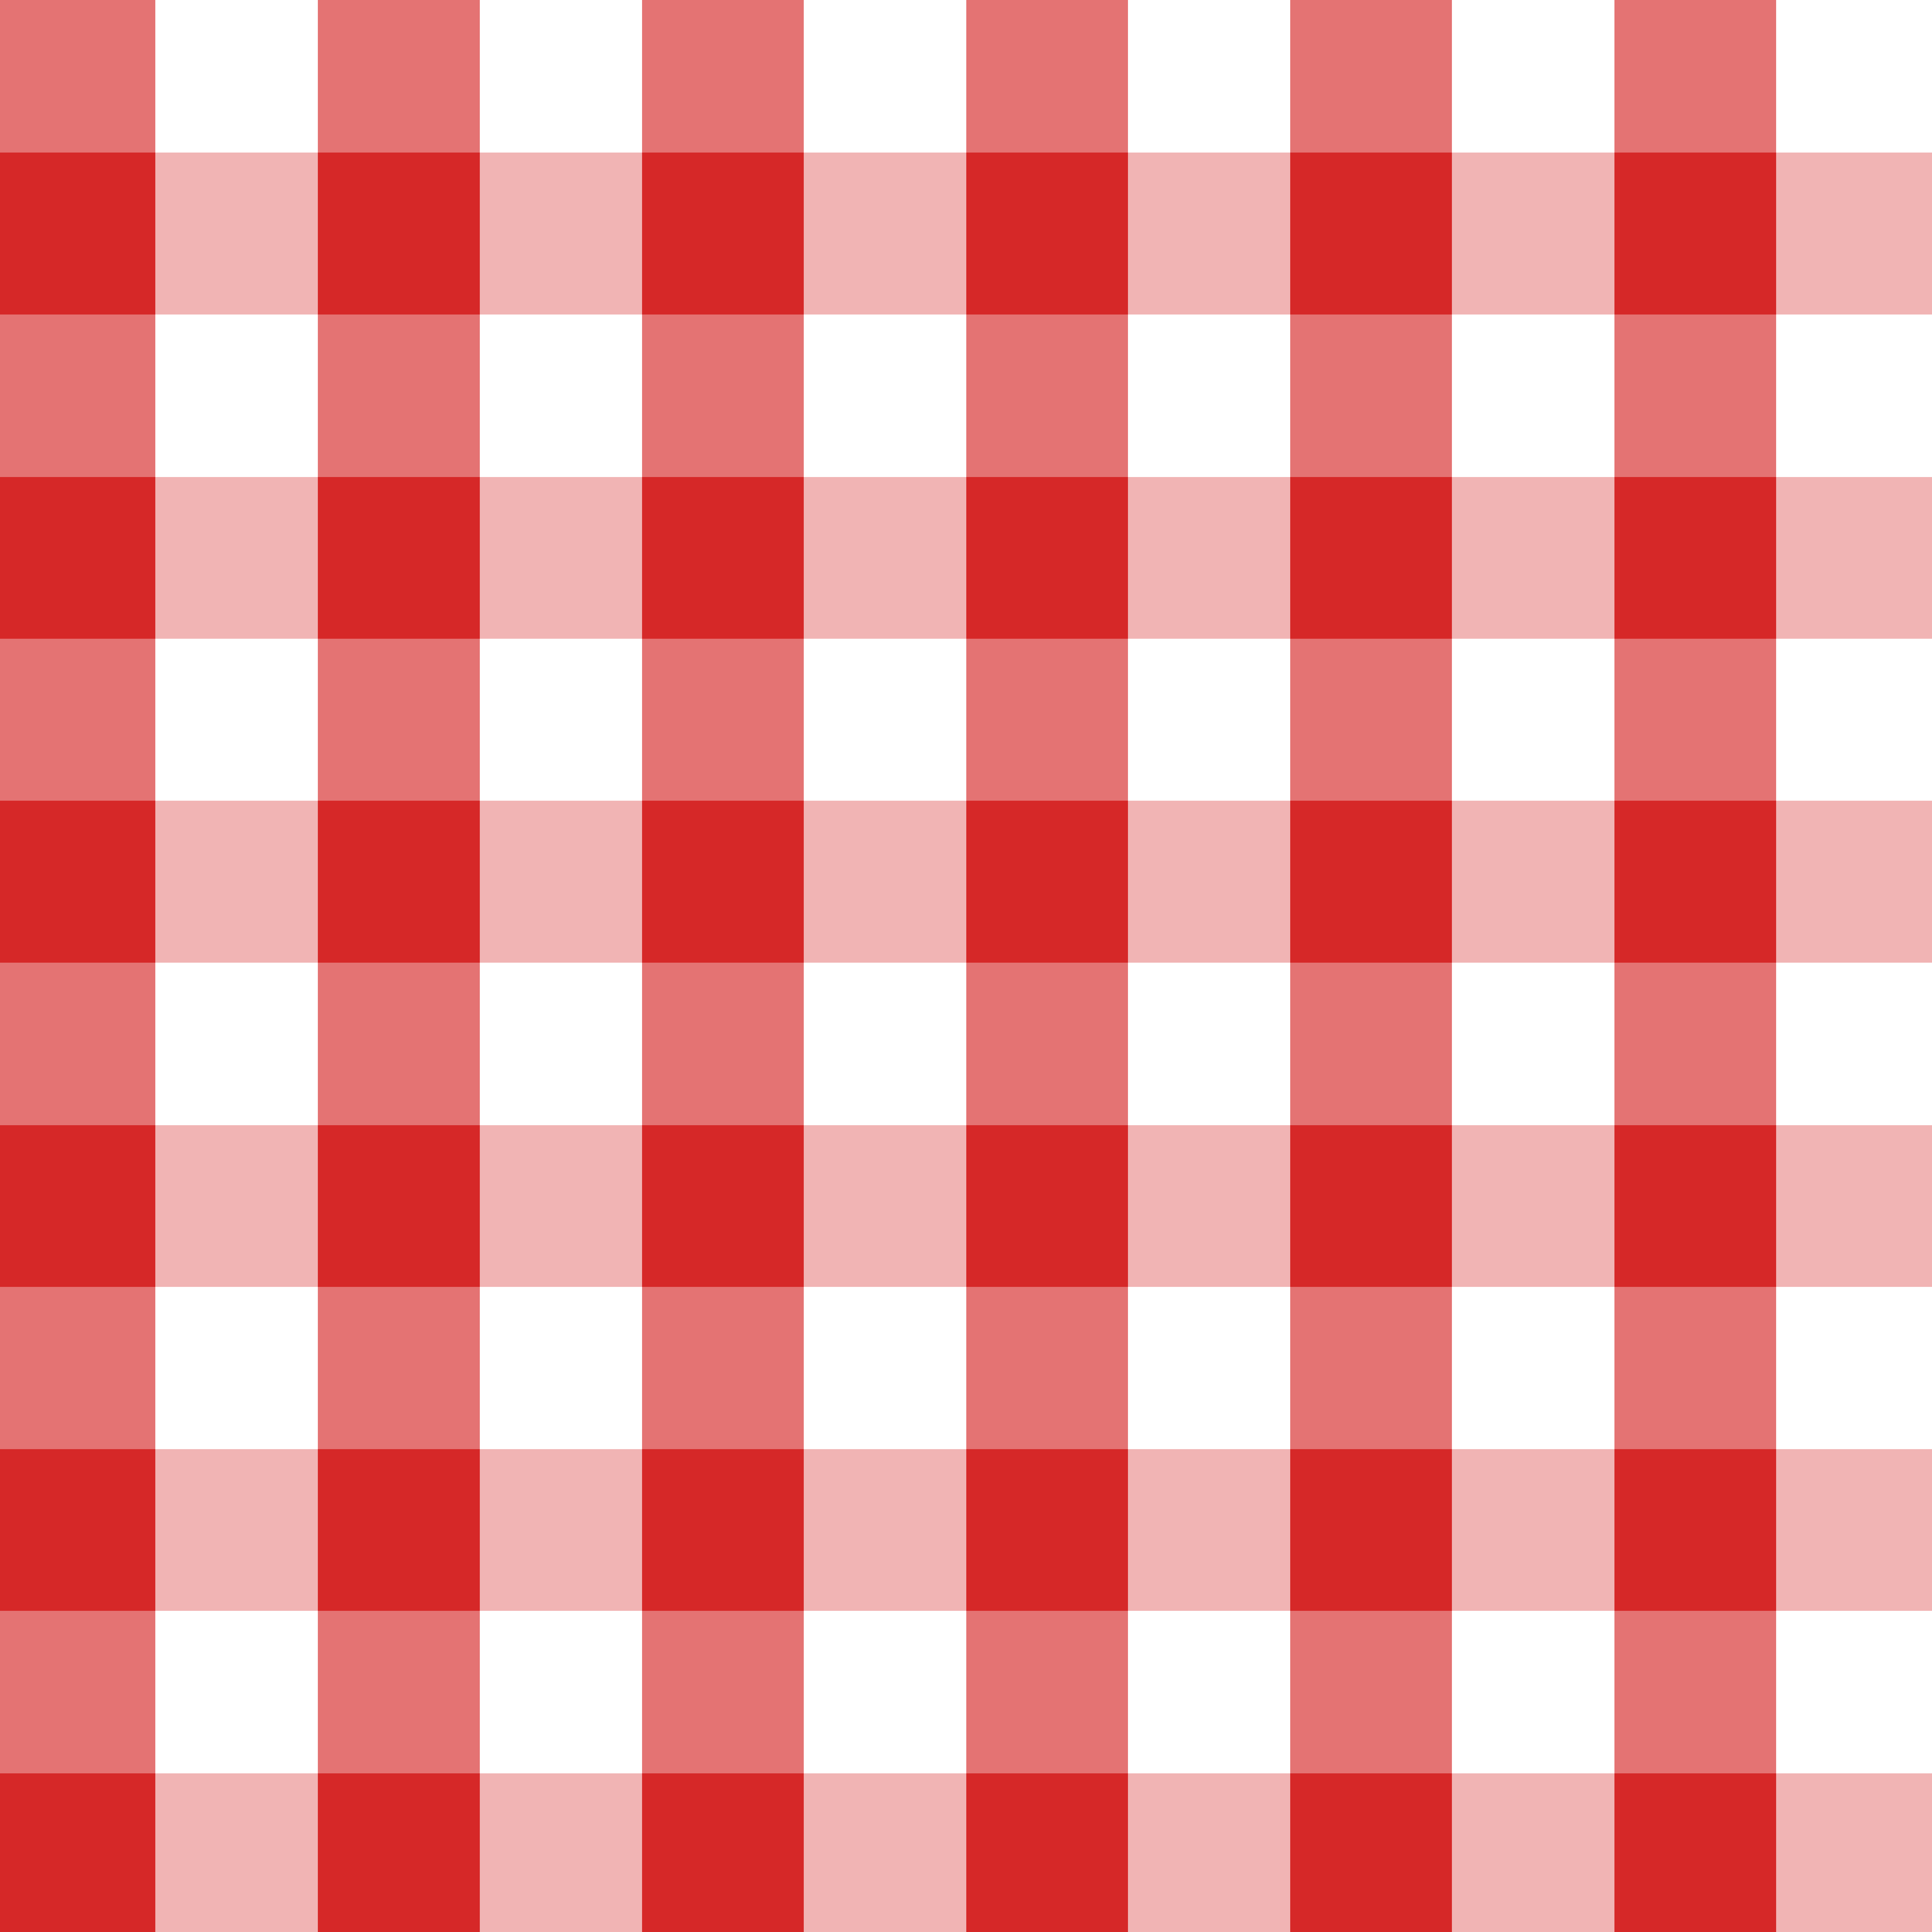 Red And White Checkered Rug: Red And White Checkers Clipart